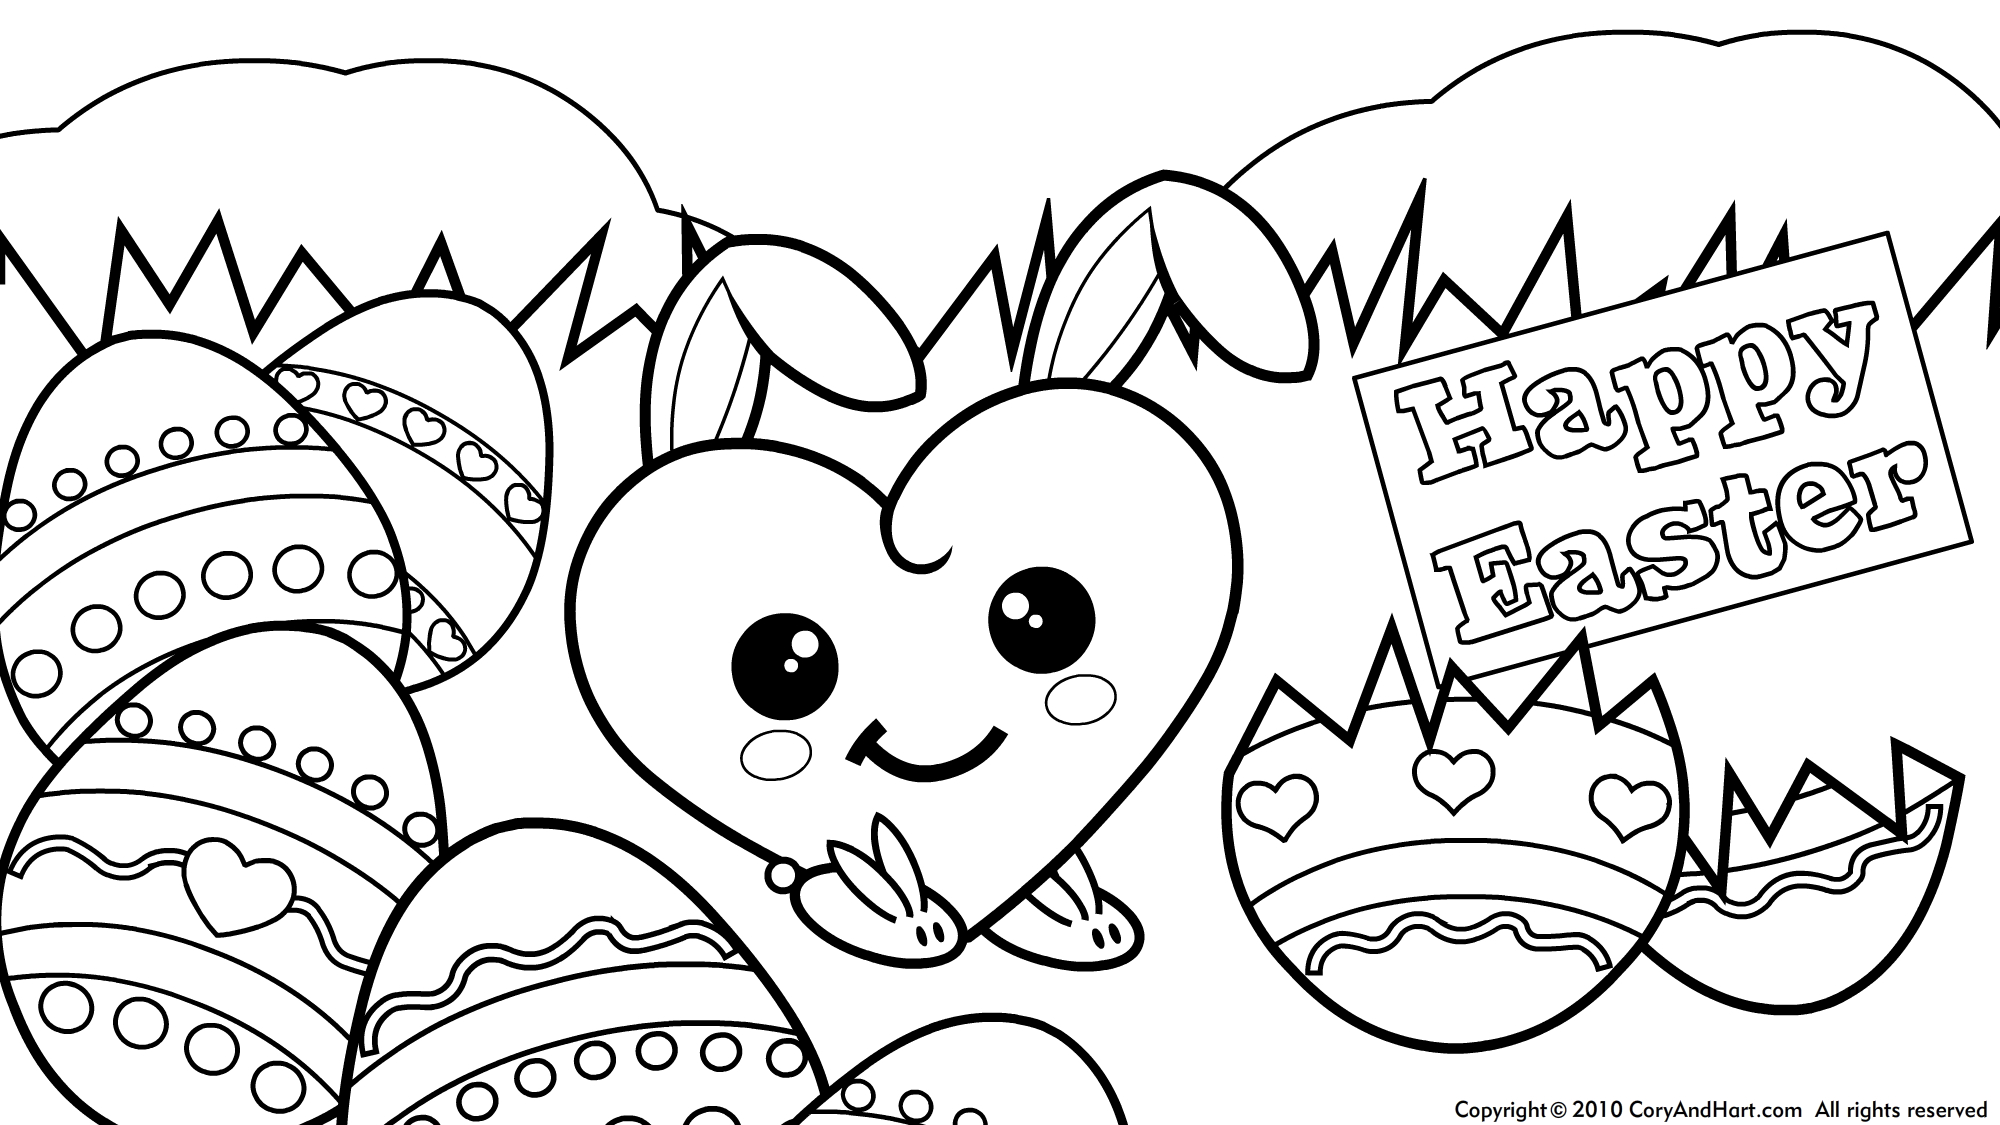 Online Easter Coloring Pages to Print 1i - Save it to your computer